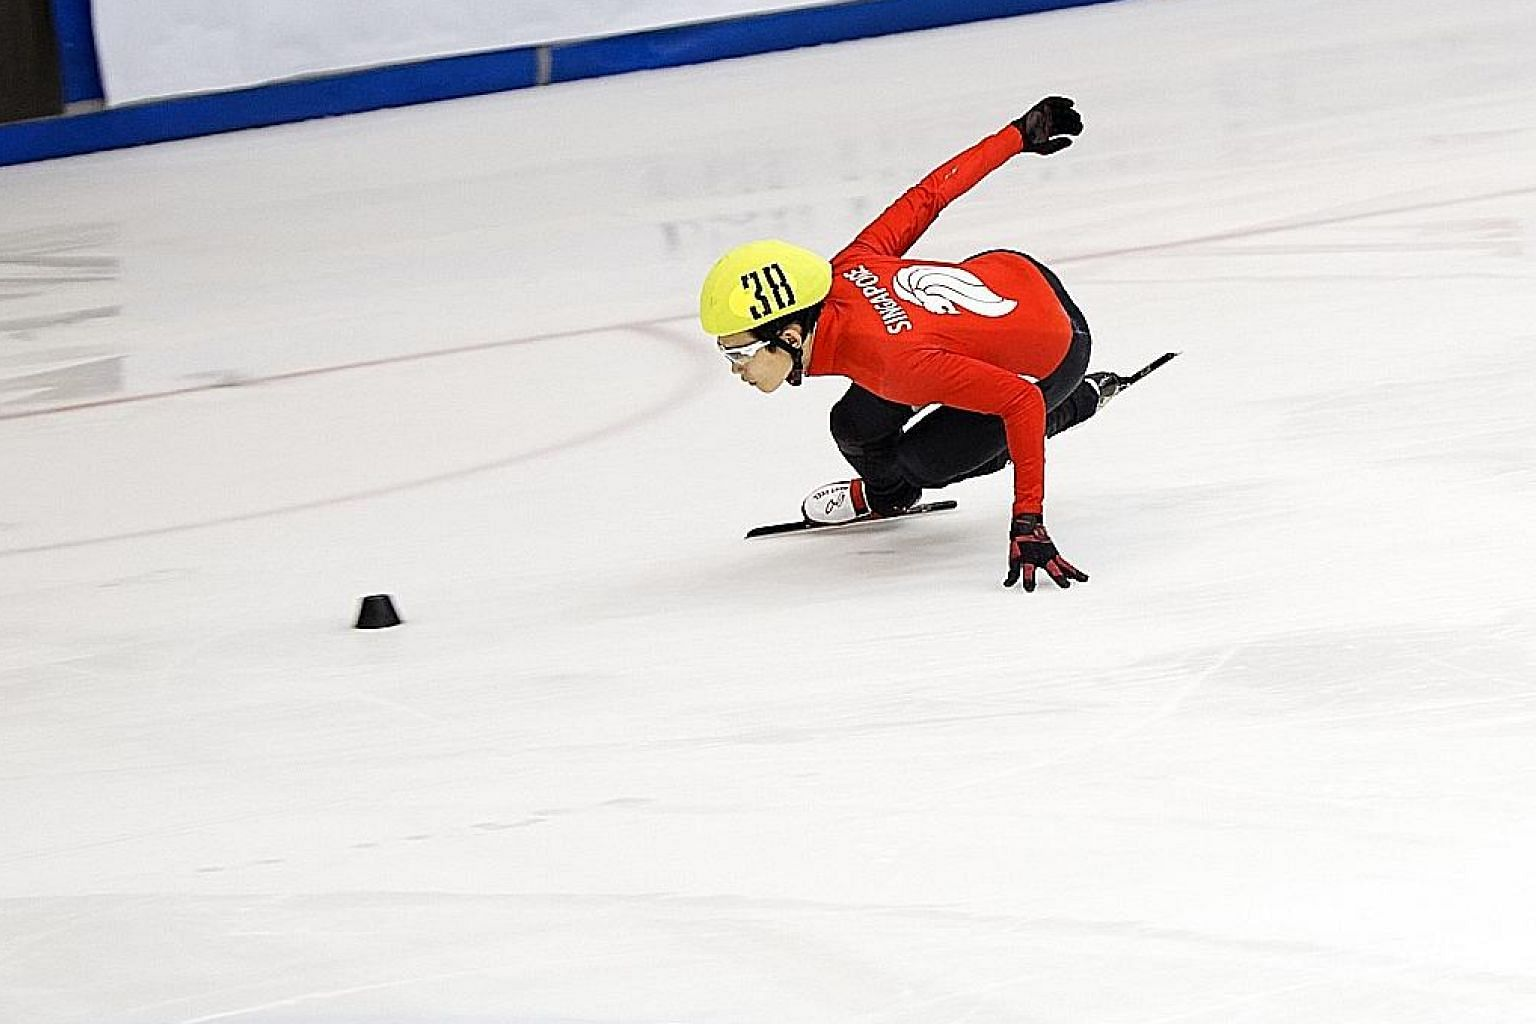 Singapore short track speed skater Lucas Ng in action at the MapleZ Southeast Asian Short Track Trophy yesterday. The 28-year-old won both his events on the first day of the competition, with Malaysian Wong De-Vin behind him.